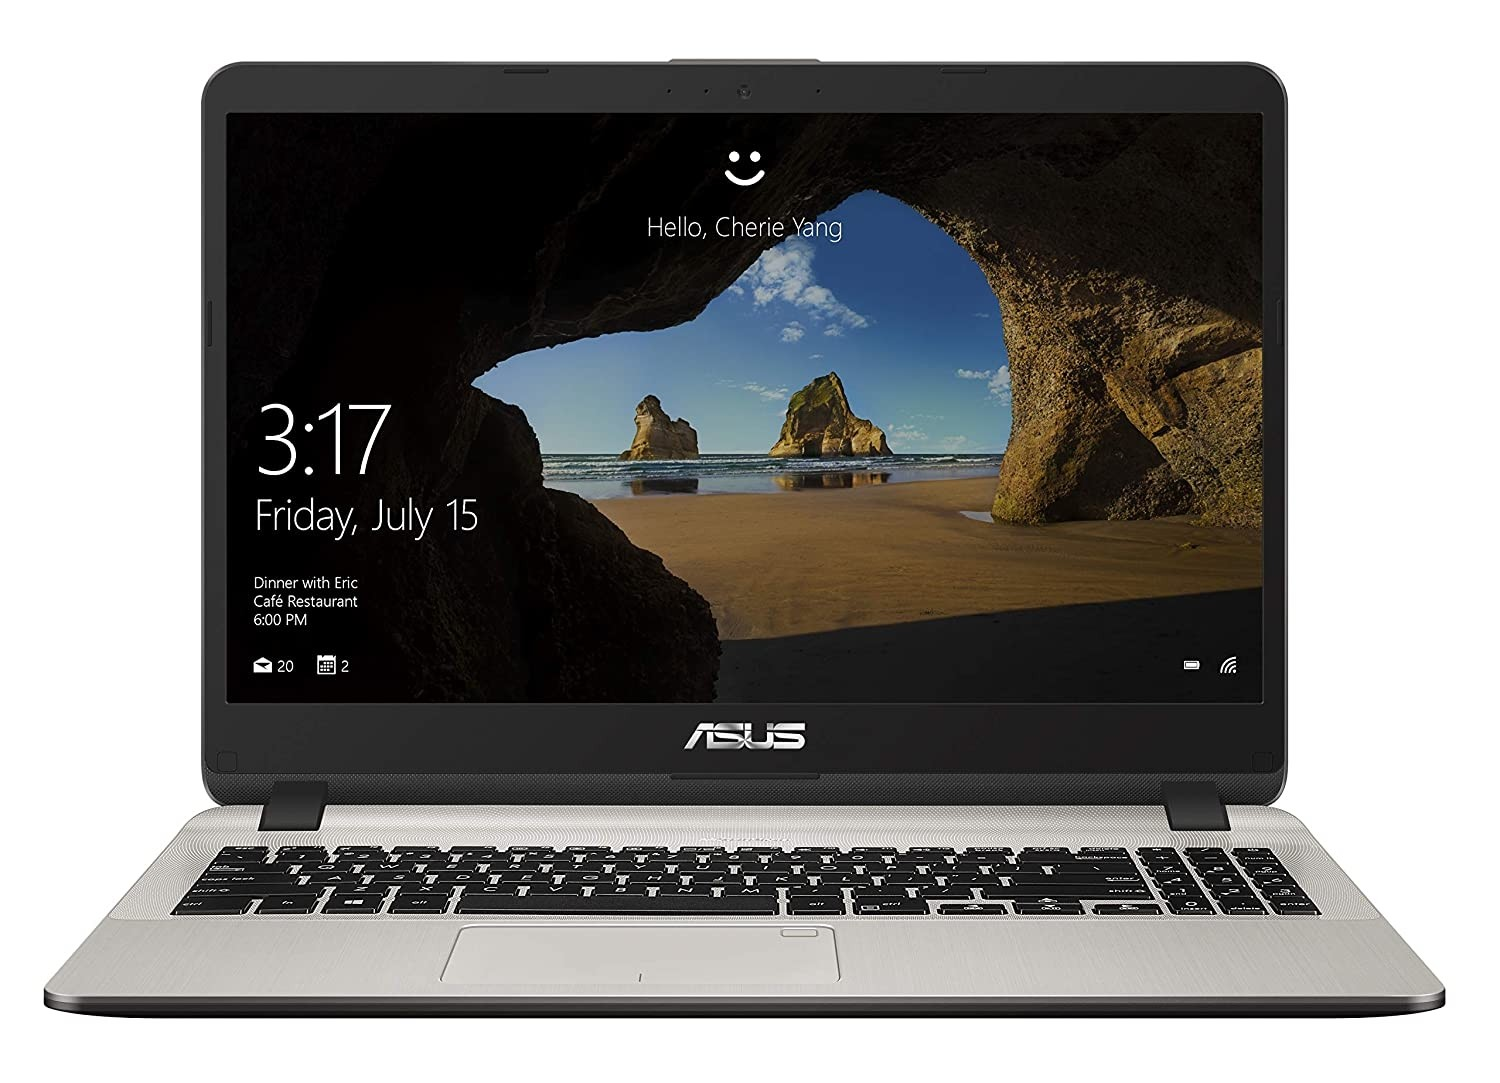 Refurbished laptops & desktops - Asus Vivobook X507Uf-Ej300T Intel Core I5 8TH Gen 15.6-Inch FHD Thin And Light Laptop (8GB RAM/1TB HDD/Windows 10/2GB Nvidia Geforce MX130 Graphics/FP Reader/1.68 Kg), Icicle Gold